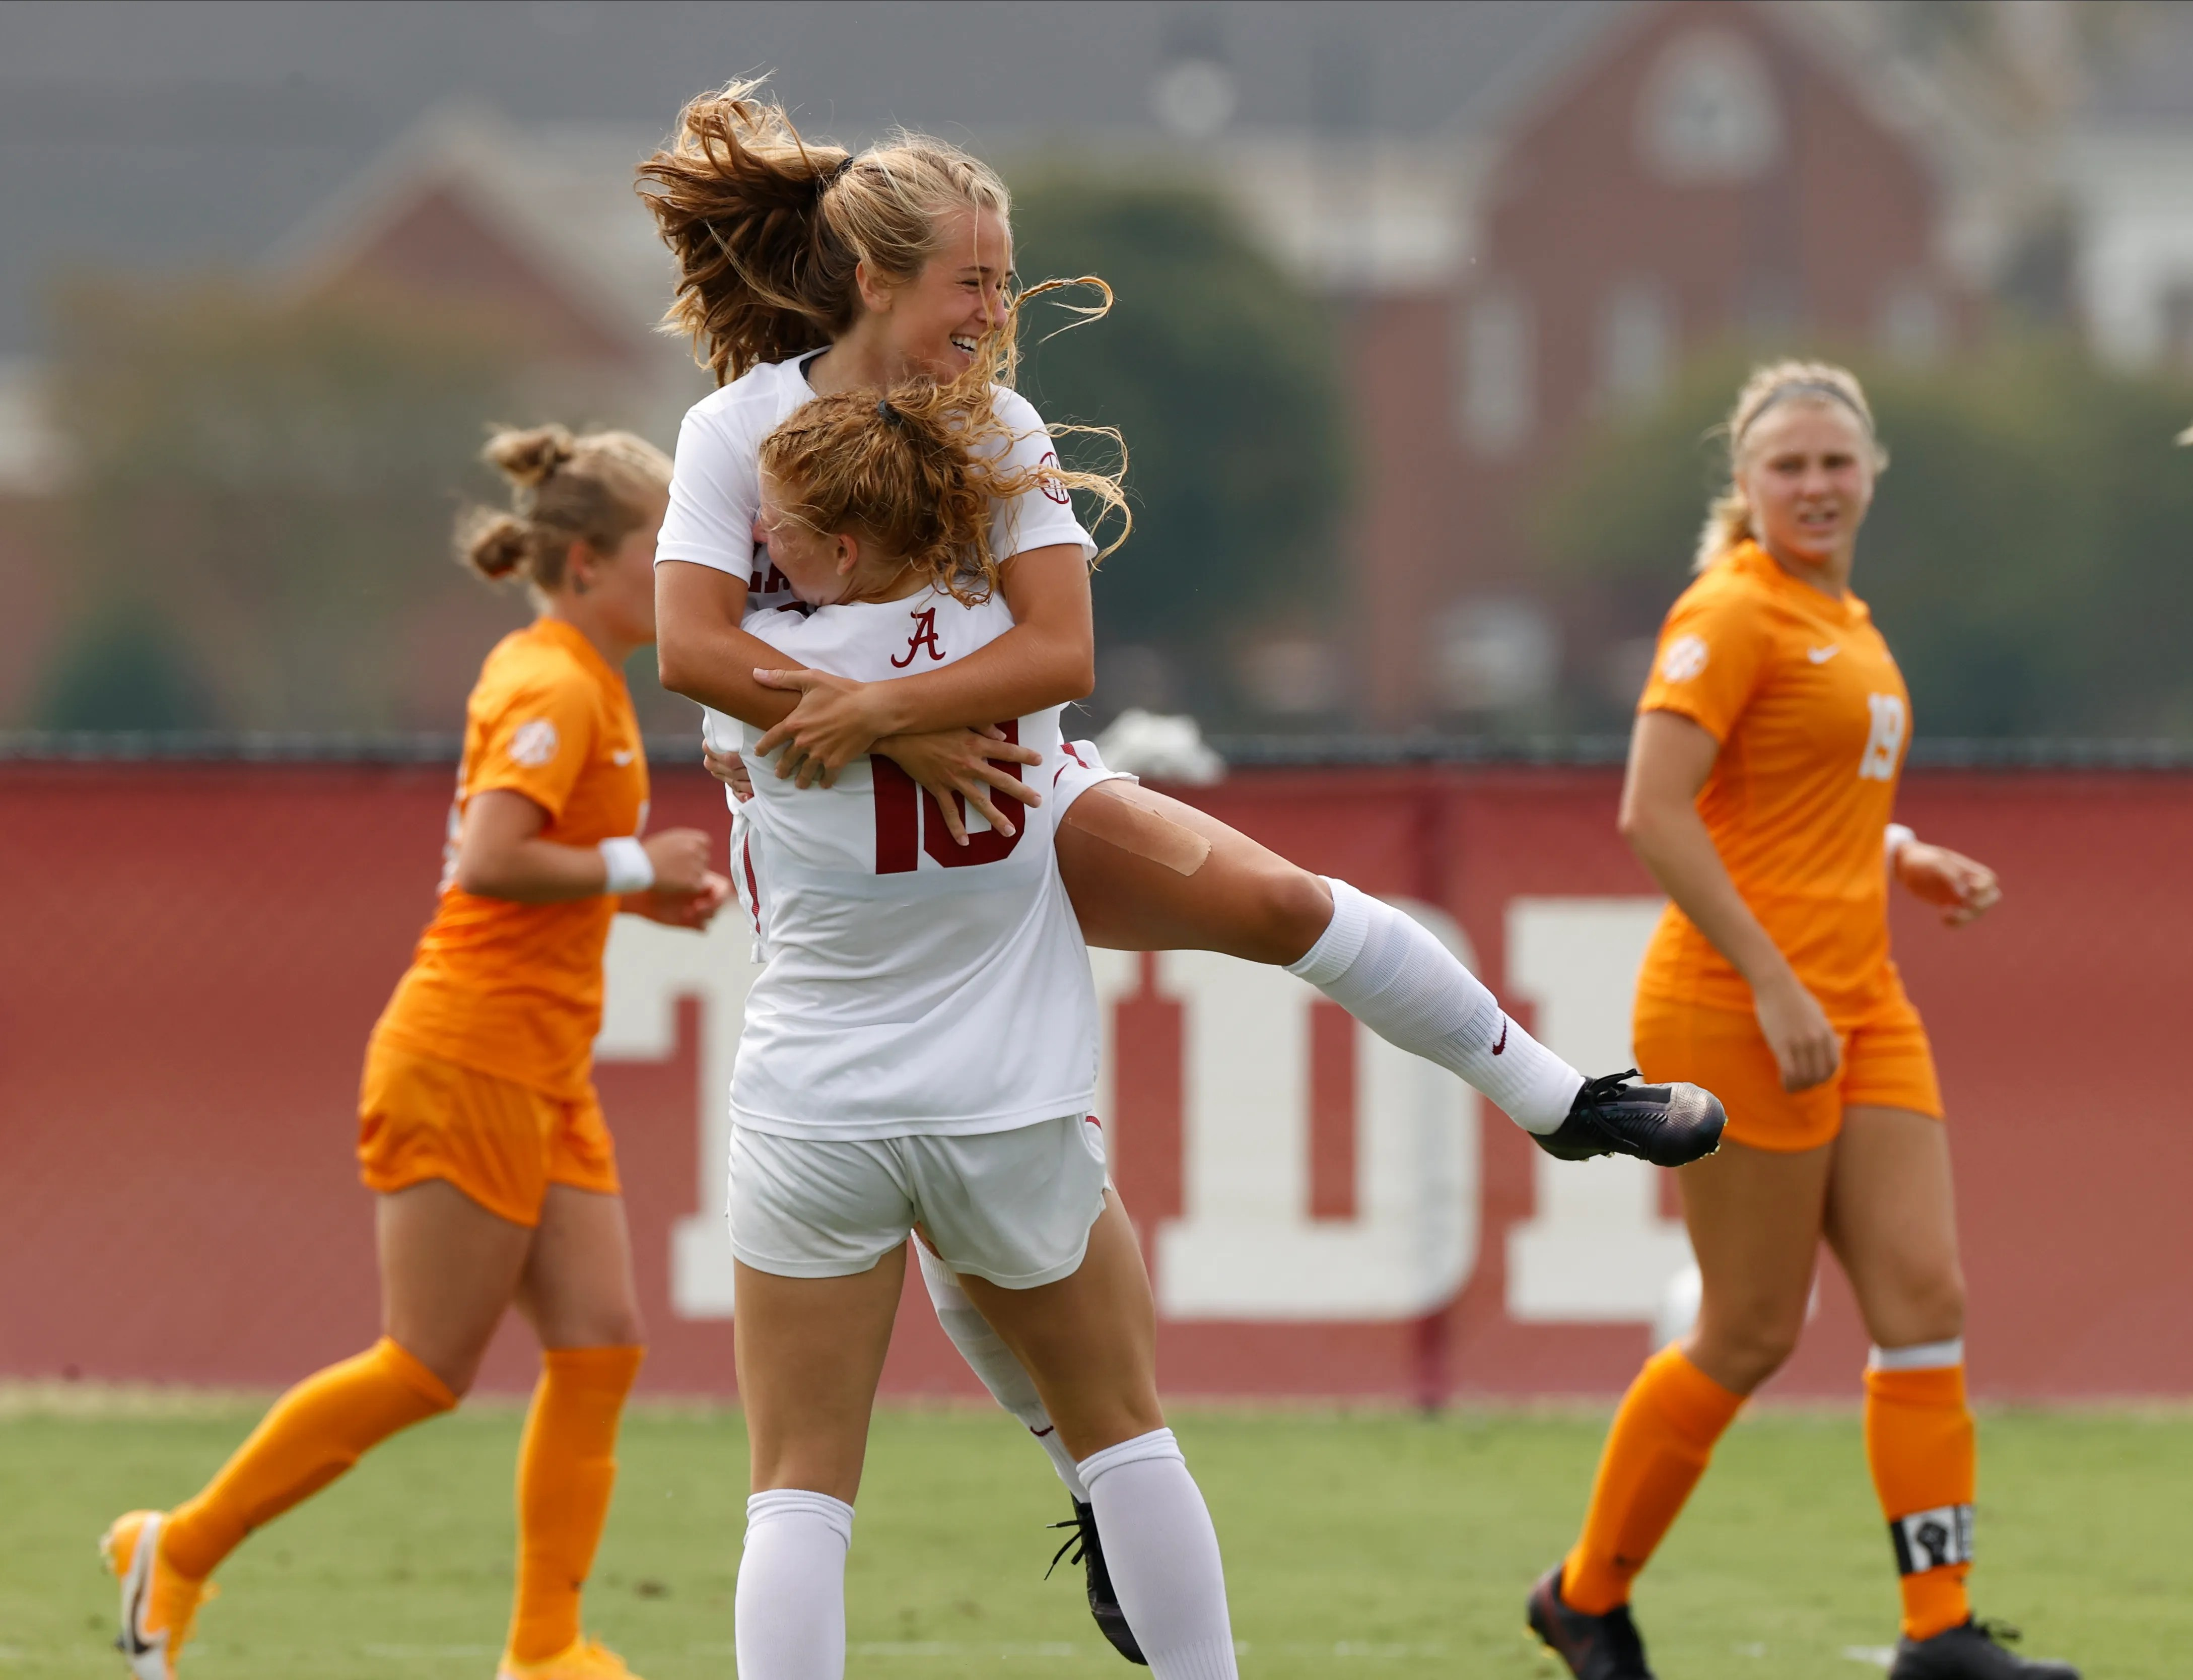 Sec Women S Soccer Tournament 2020 How To Watch Alabama Vs Lsu On Tv Live Stream Granthshala Usa